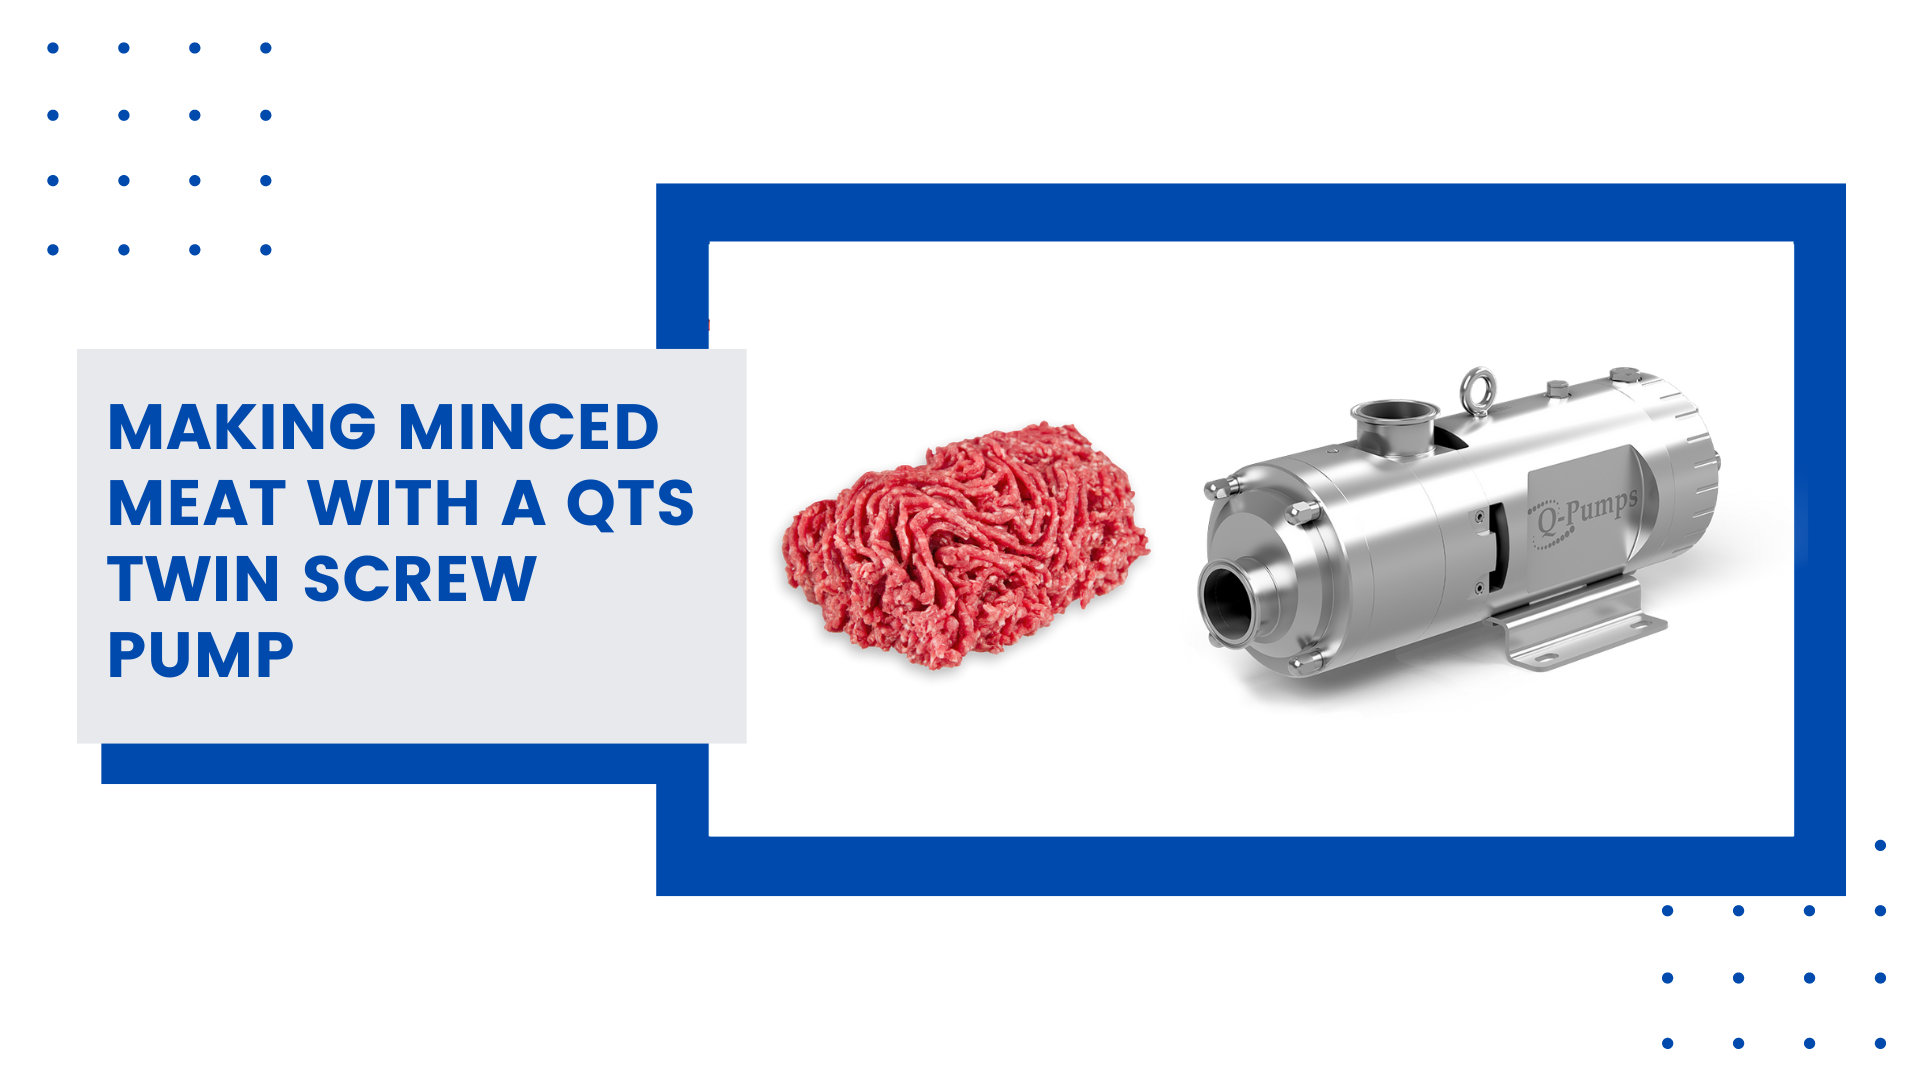 Making Minced Meat With a QTS Twin Screw Pump Youtube Video